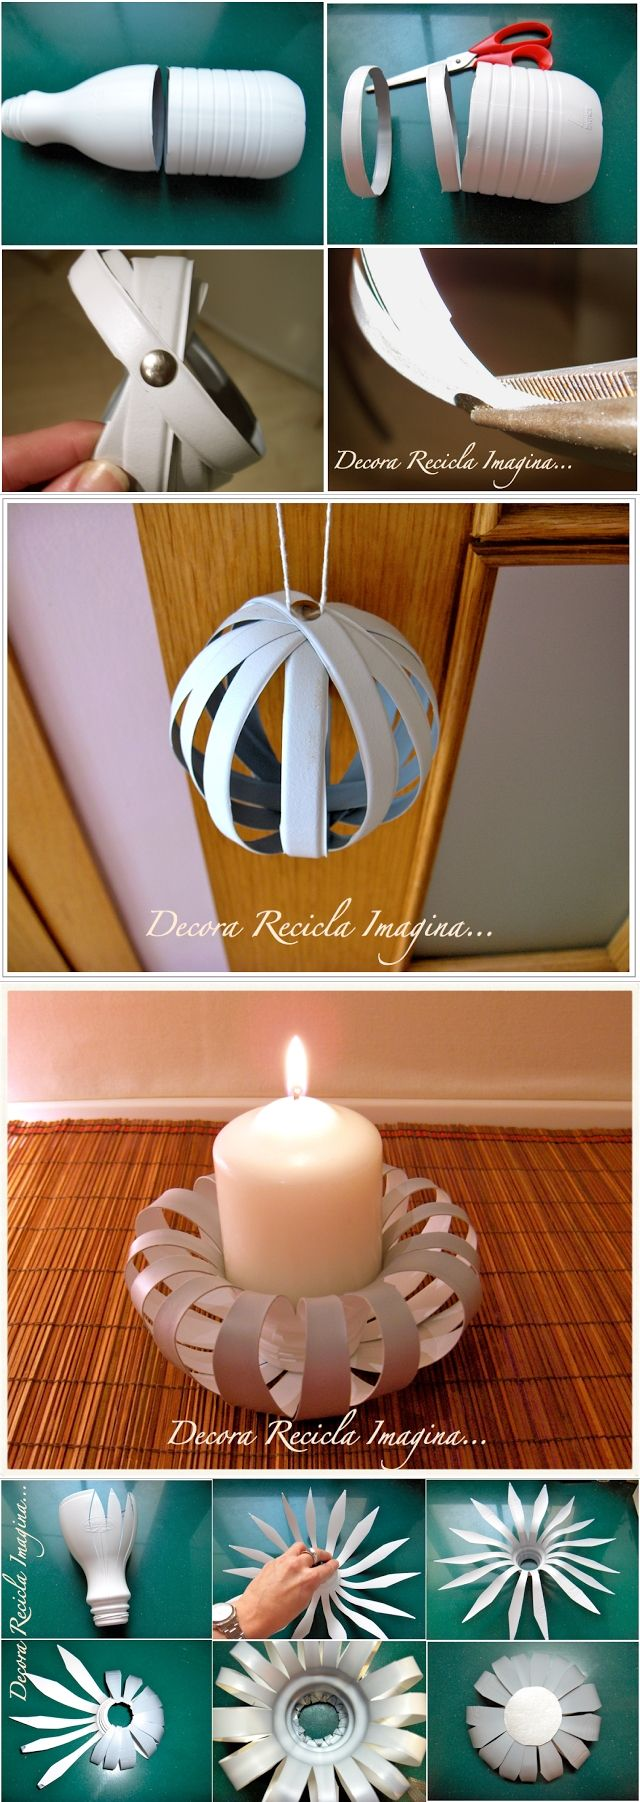 Best 25+ Recycling ideas ideas on Pinterest | Diy recycle ...